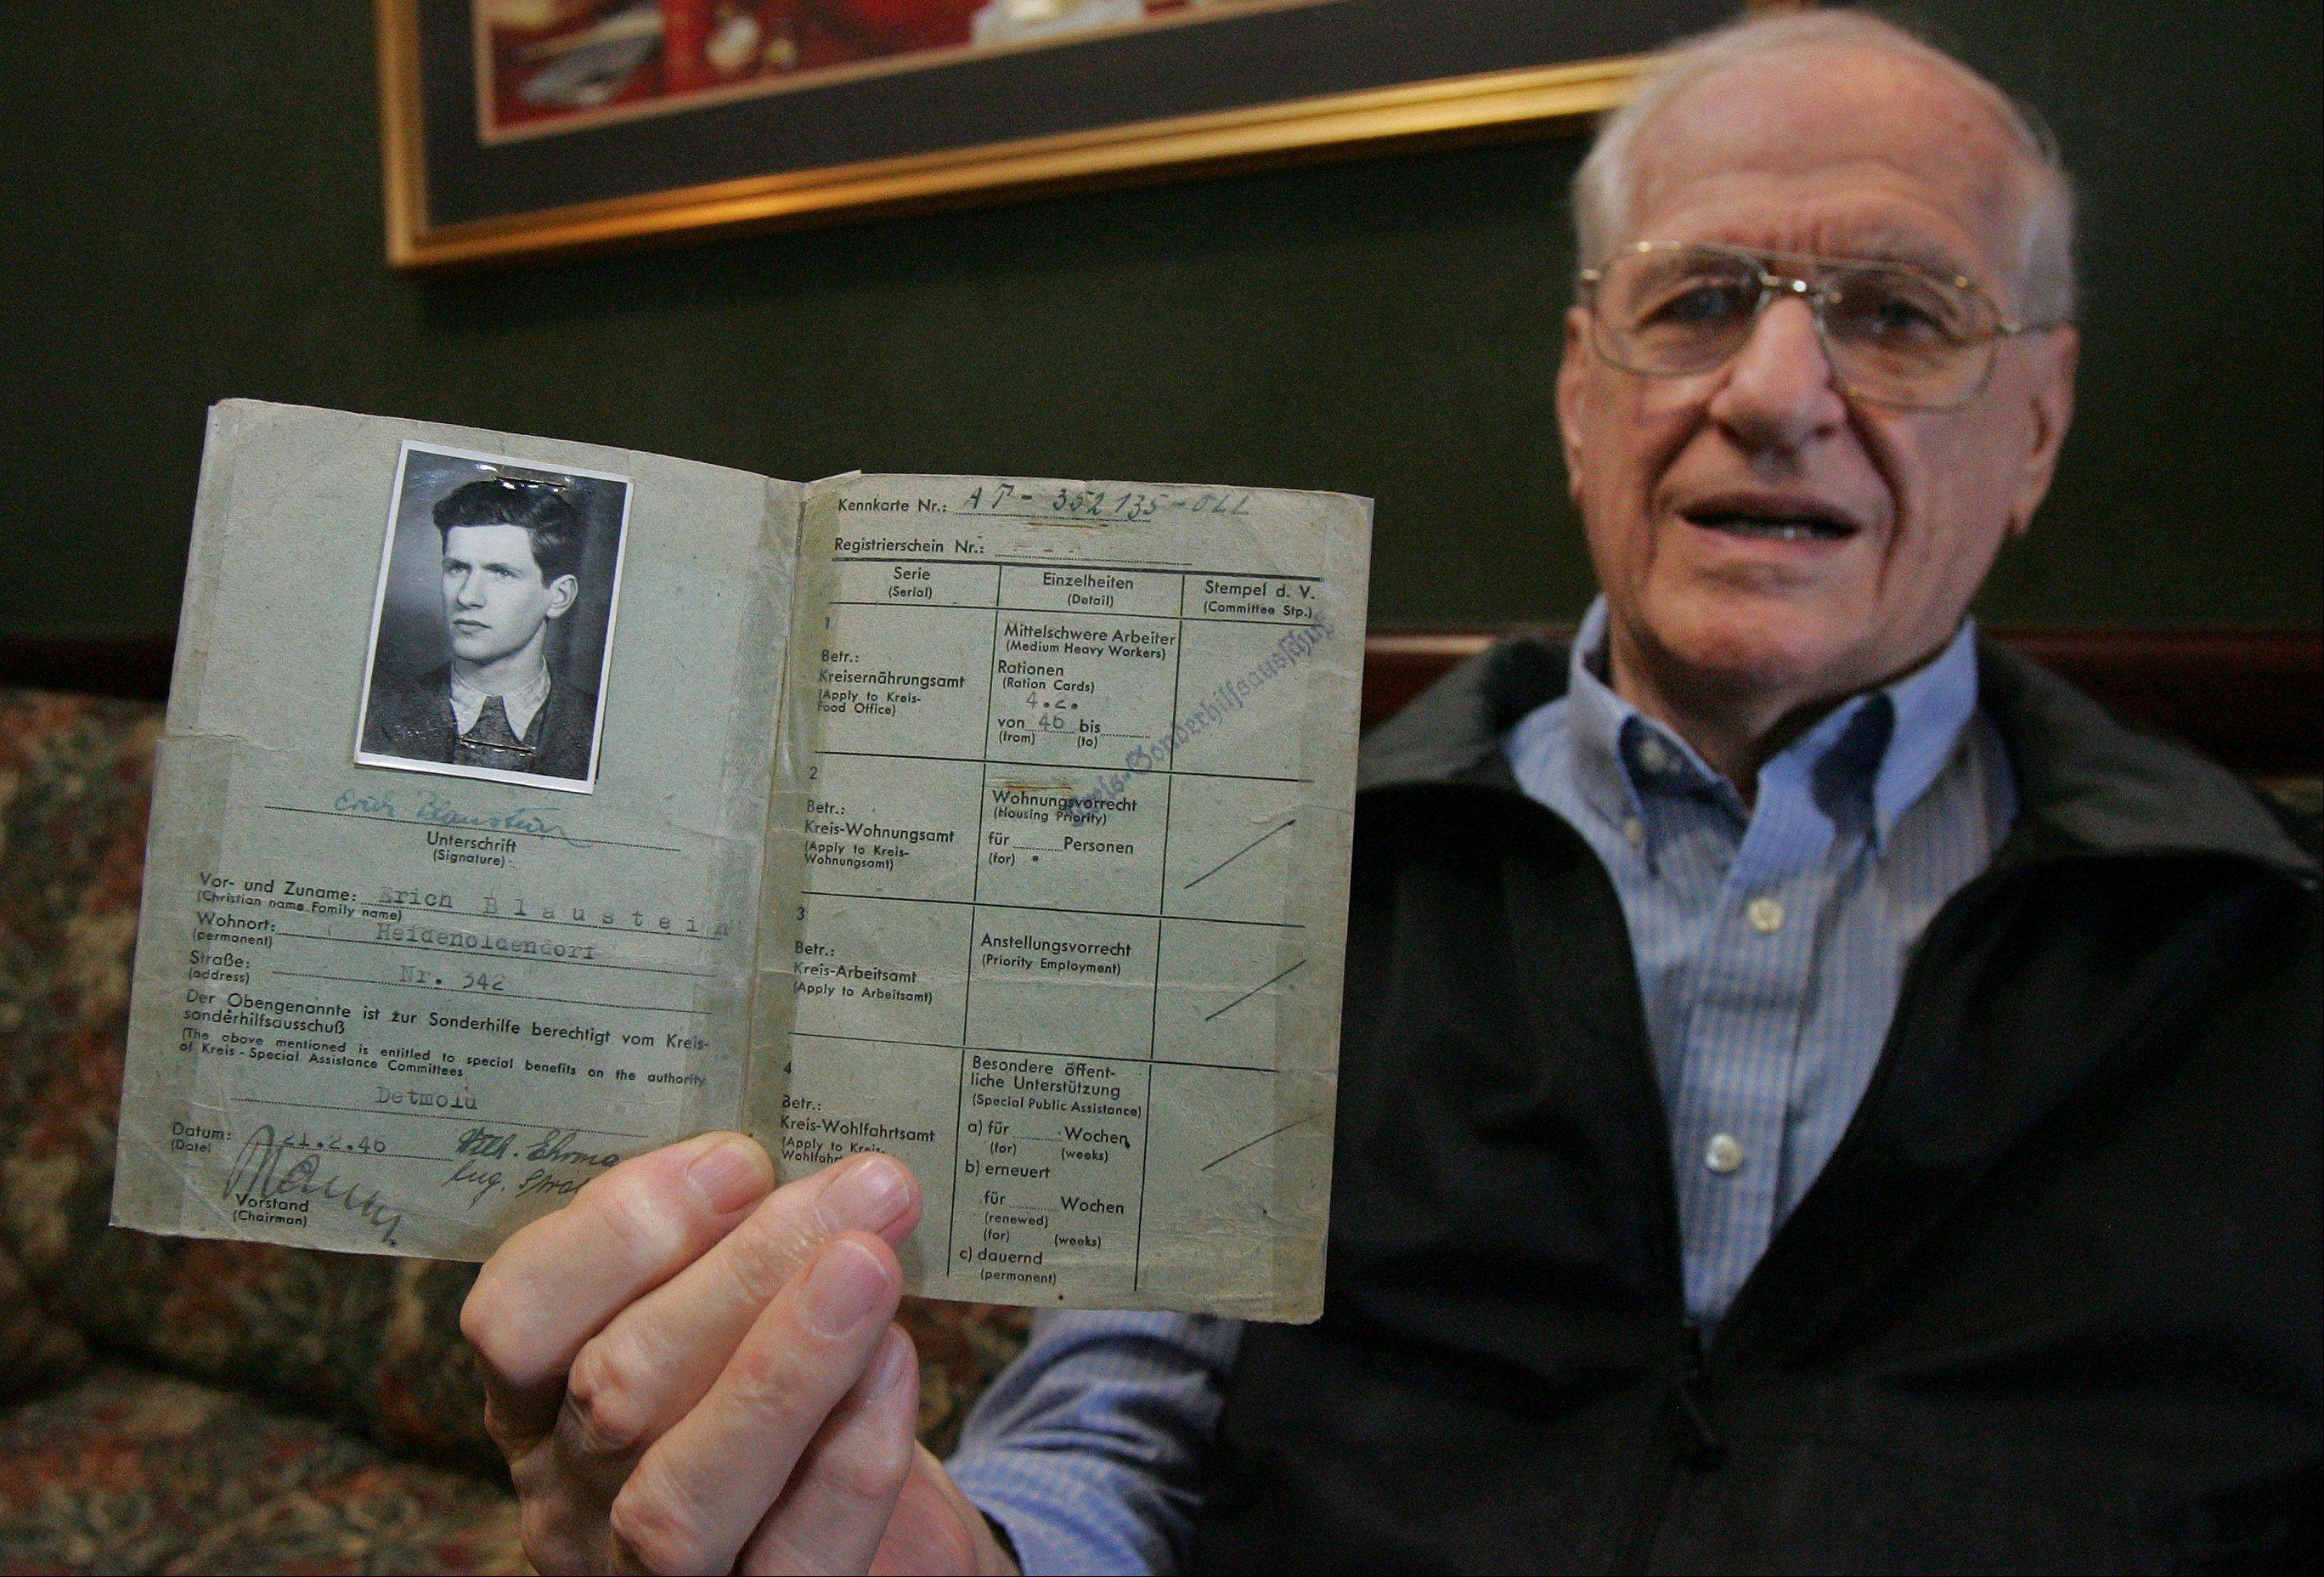 Vernon Hills Holocaust survivor shares harrowing survival story to educate